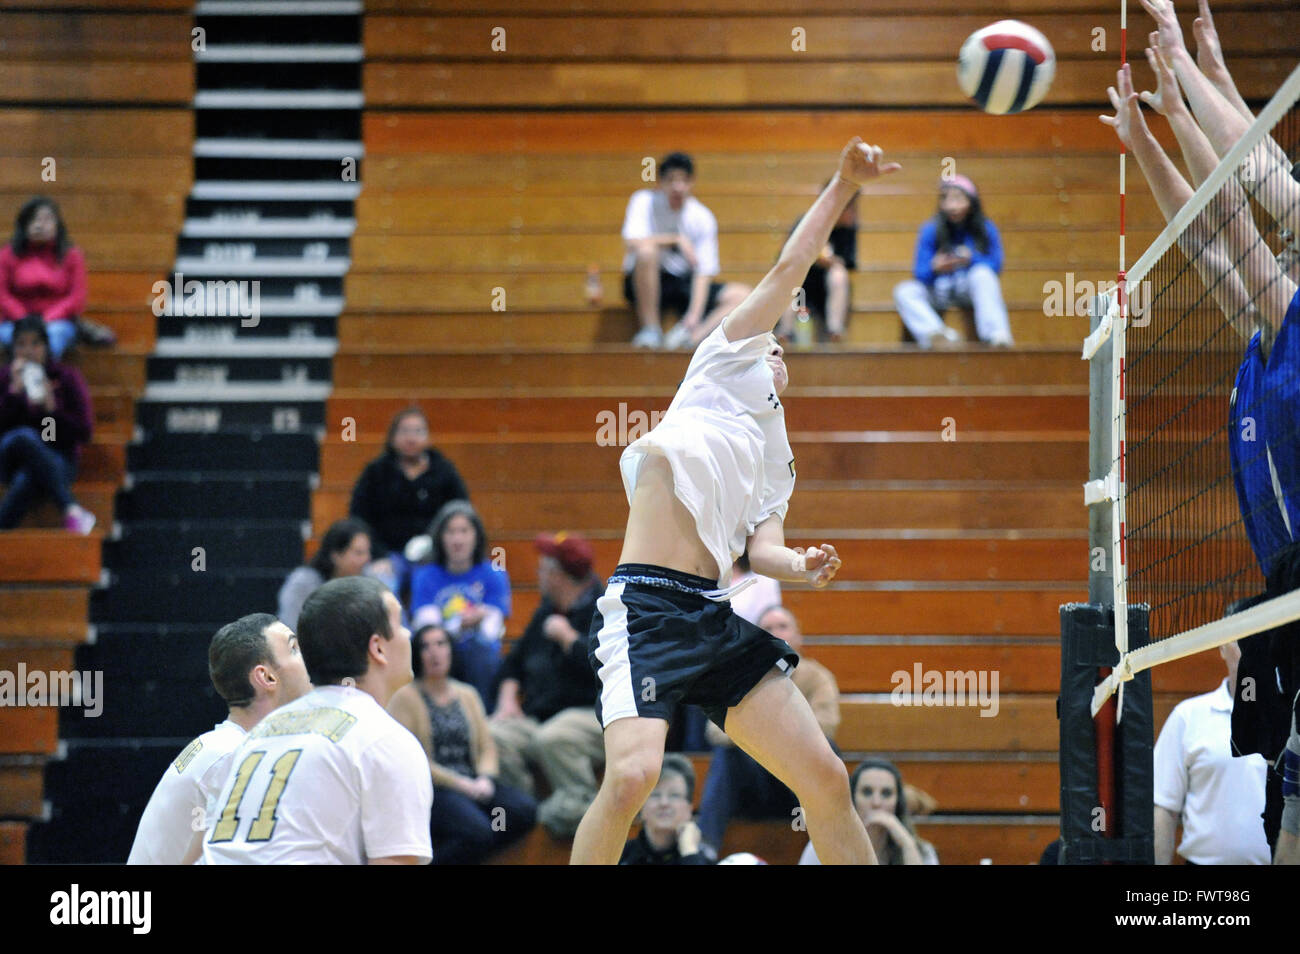 High school player rising above the floor in an effort to deliver a point-winning kill shot. USA. - Stock Image